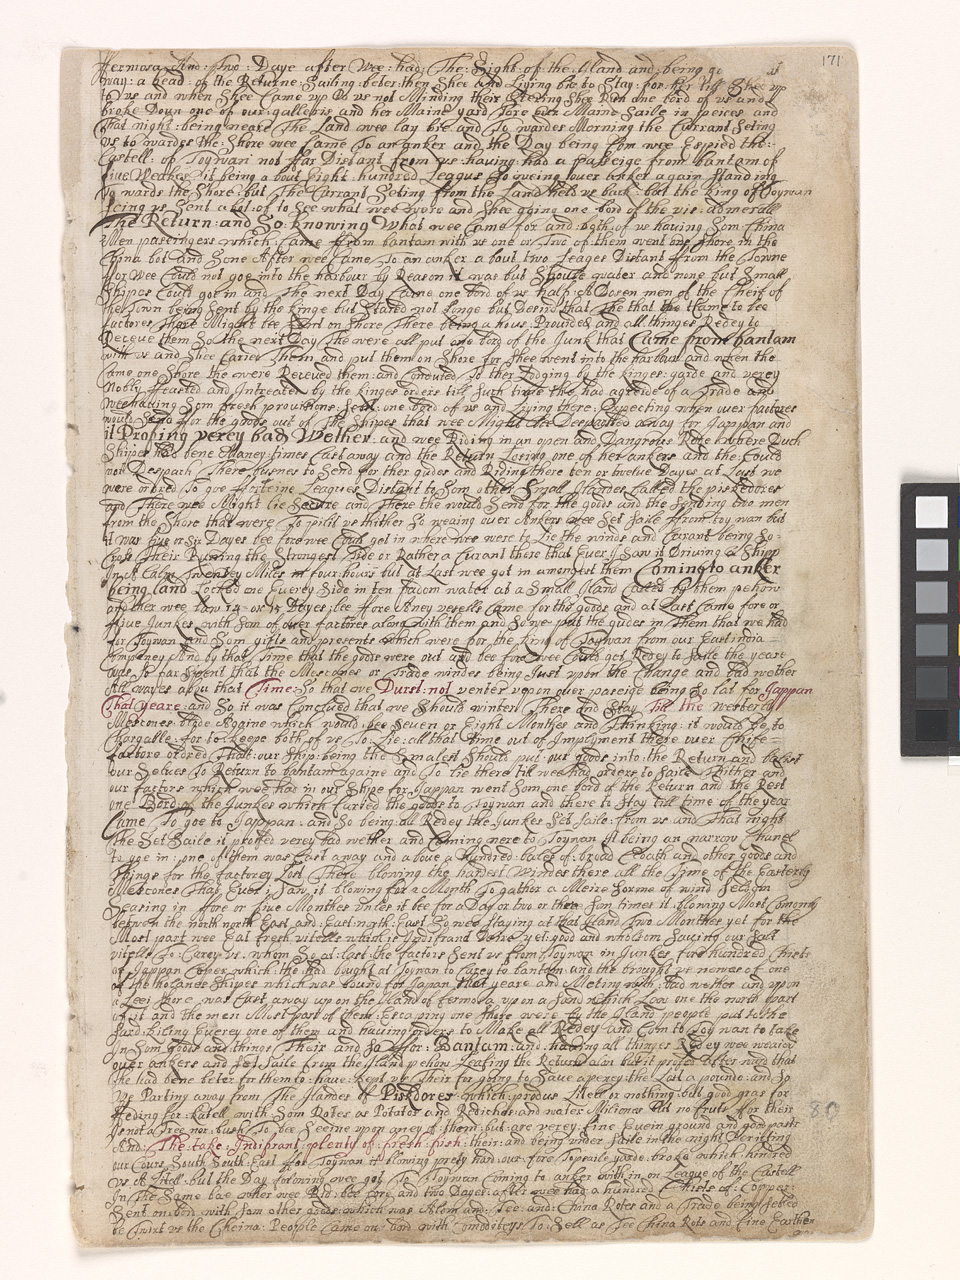 An image showing 'Page from the journal of Edward Barlow, 1659-1703.'